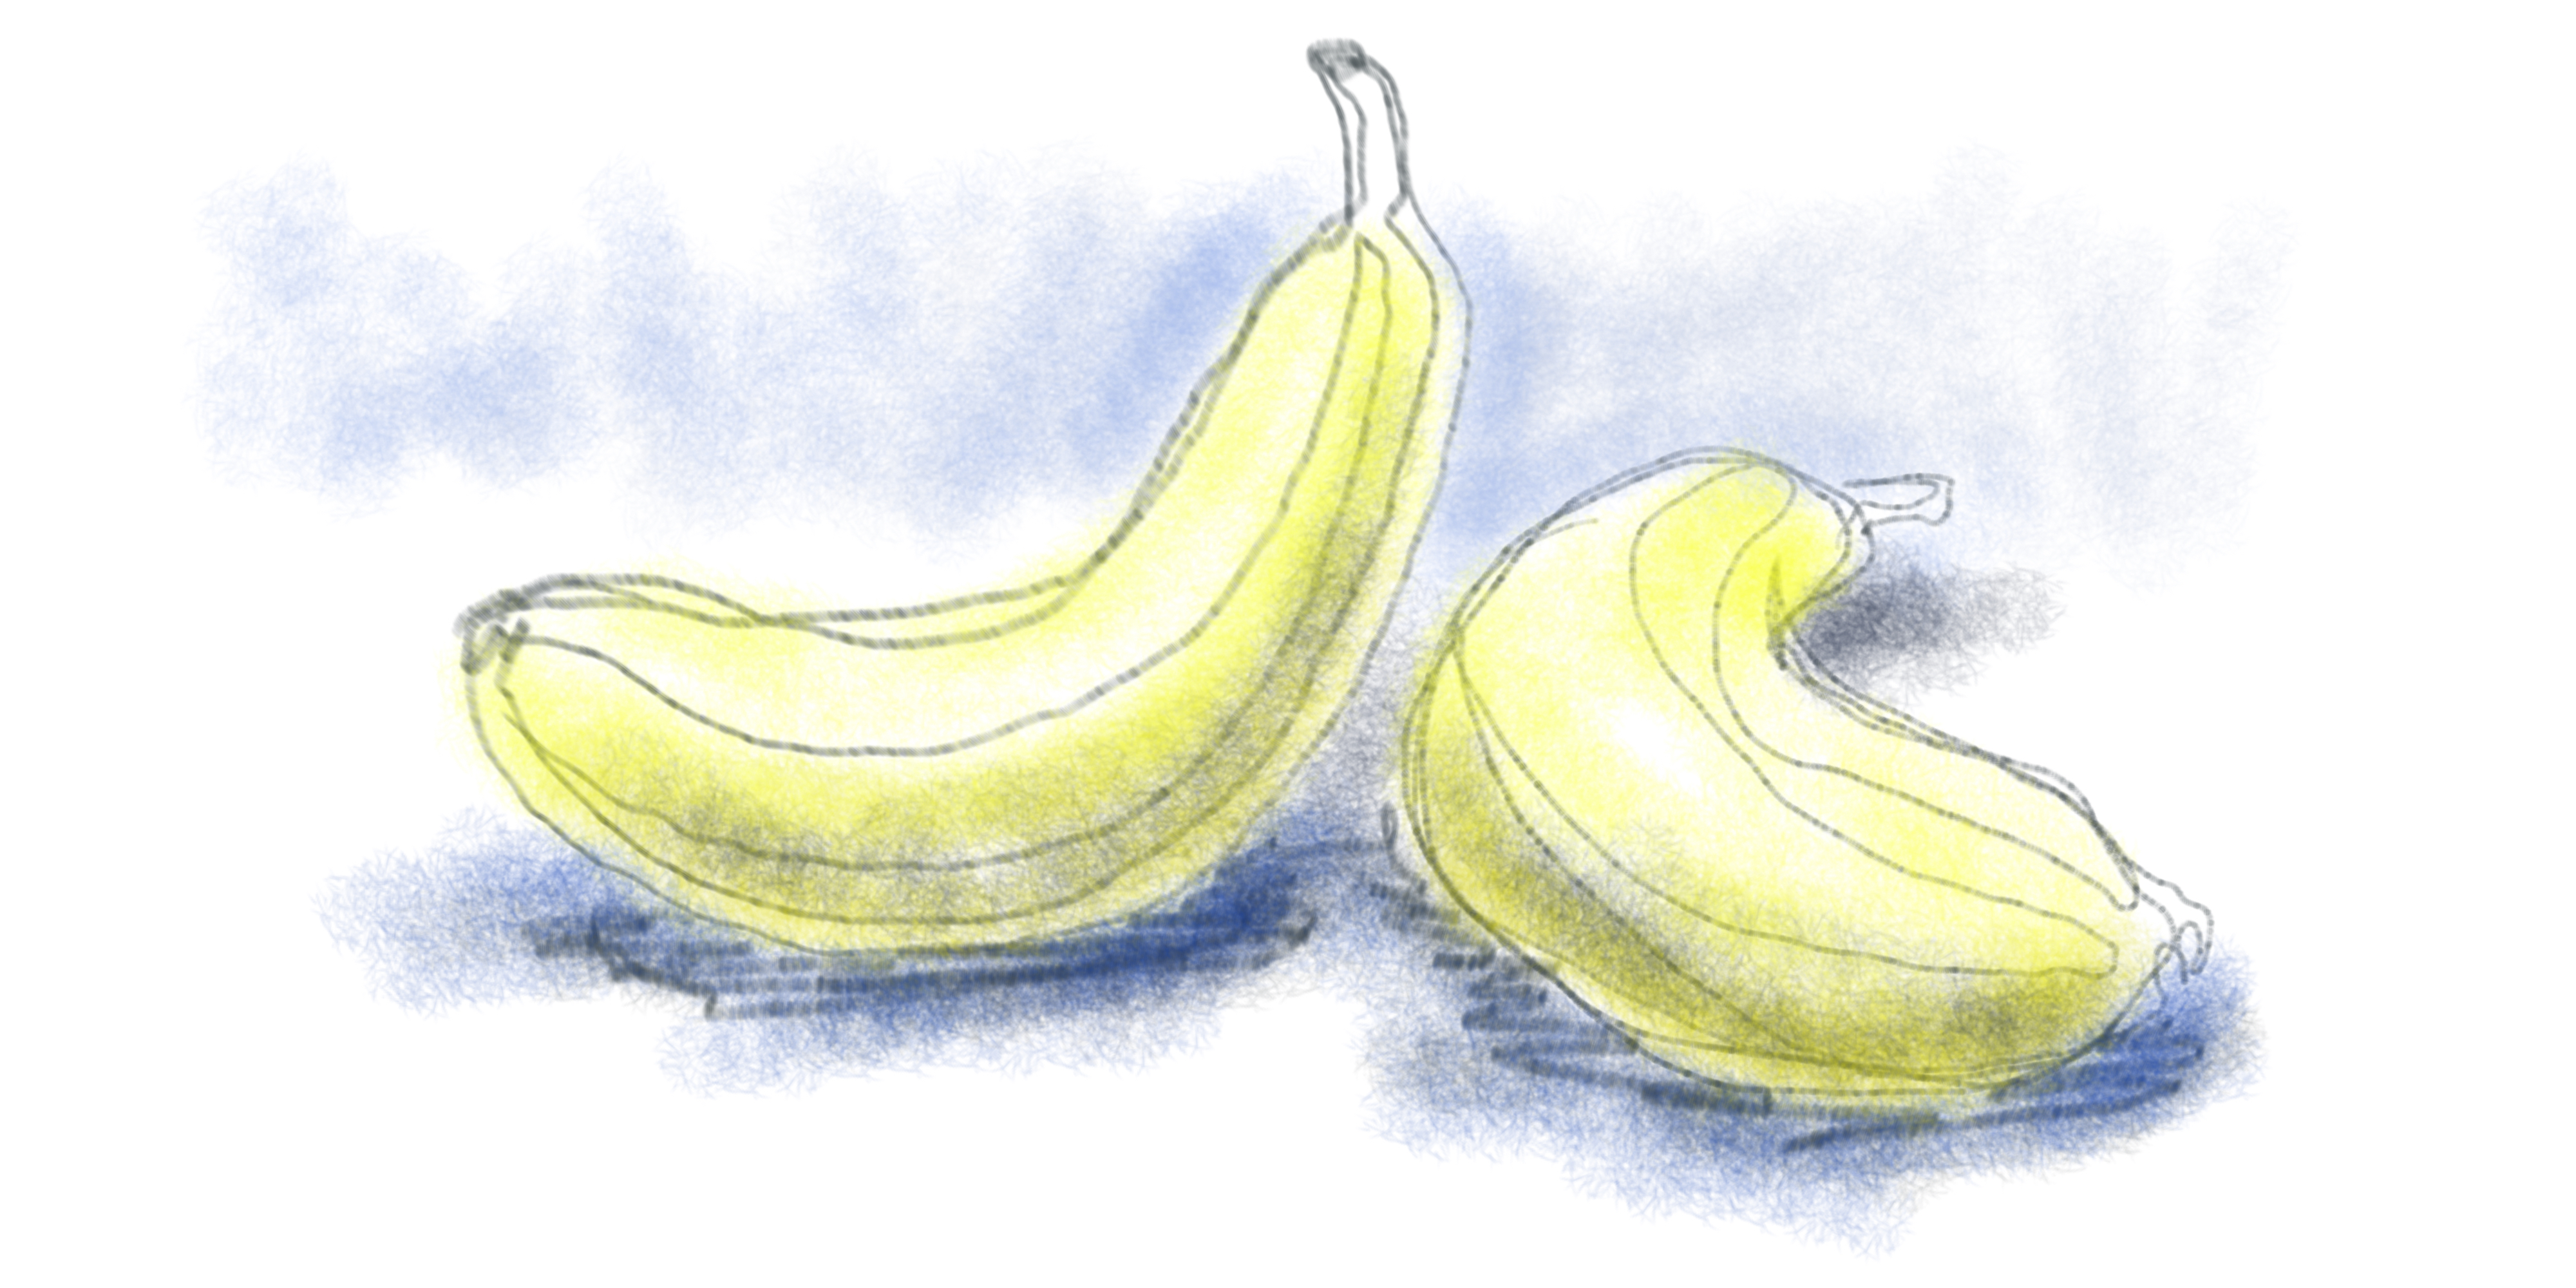 Two bananas for this  by versonova